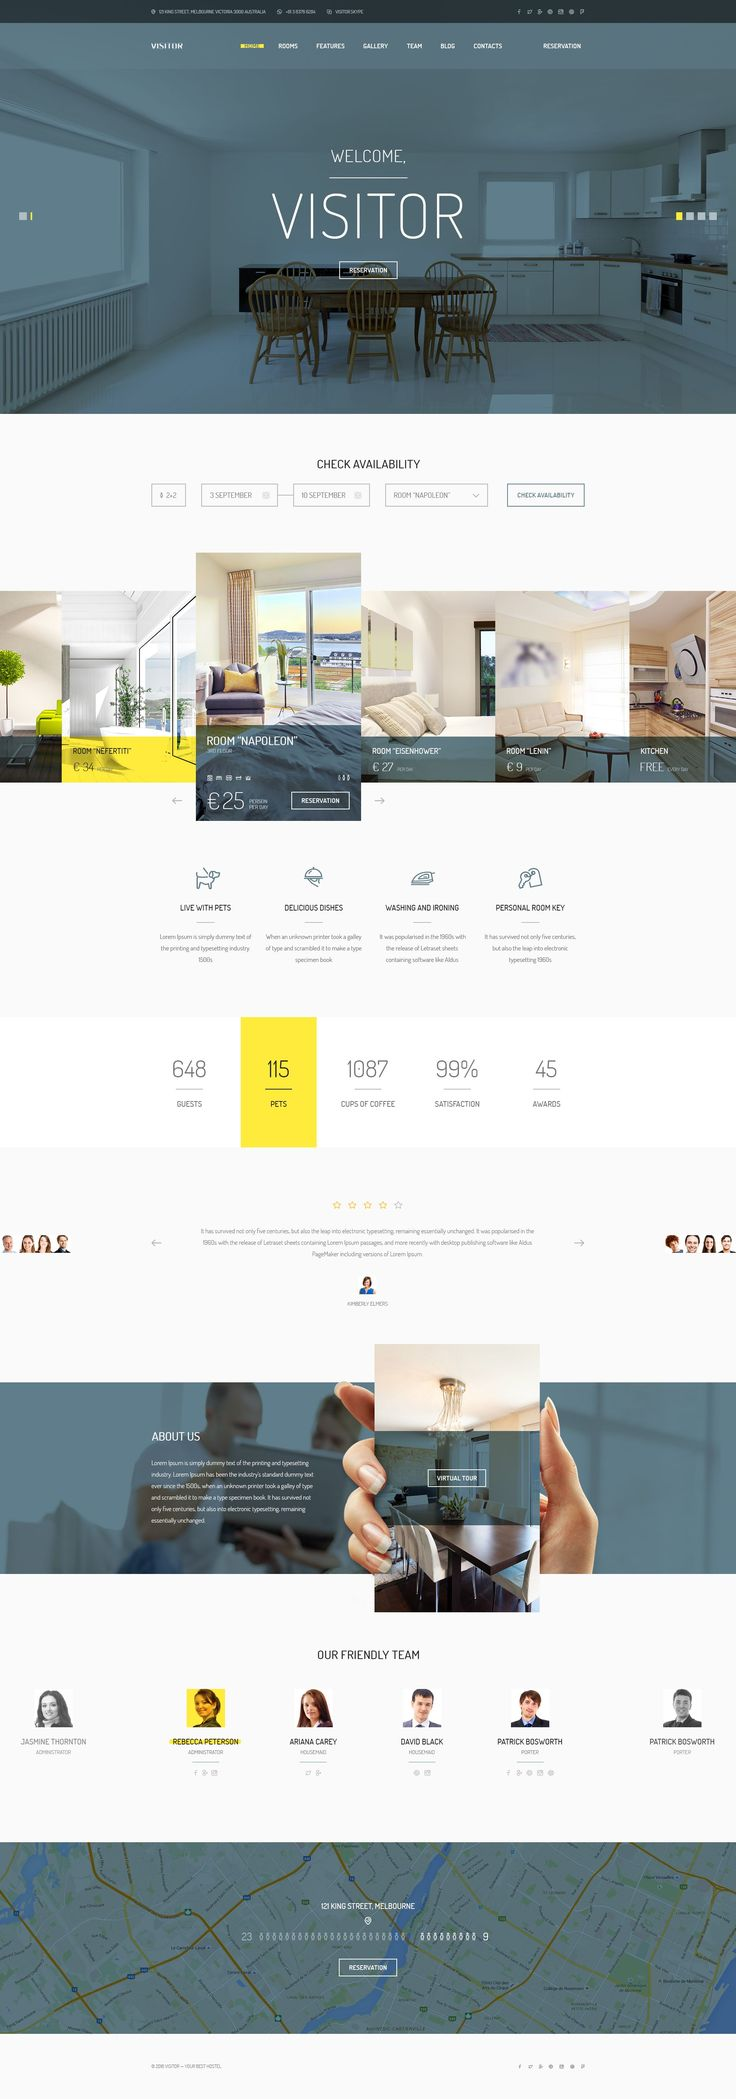 Visitor — modern and professionally crafted PSD theme which can be used for be used for small #hotel, hostel, guest houses, resort, room reservation, #travel or other website. #psdtemplates Download Now➝ http://themeforest.net/item/visitor-online-hostelhotel-booking-psd-template/15285217?ref=Datasata